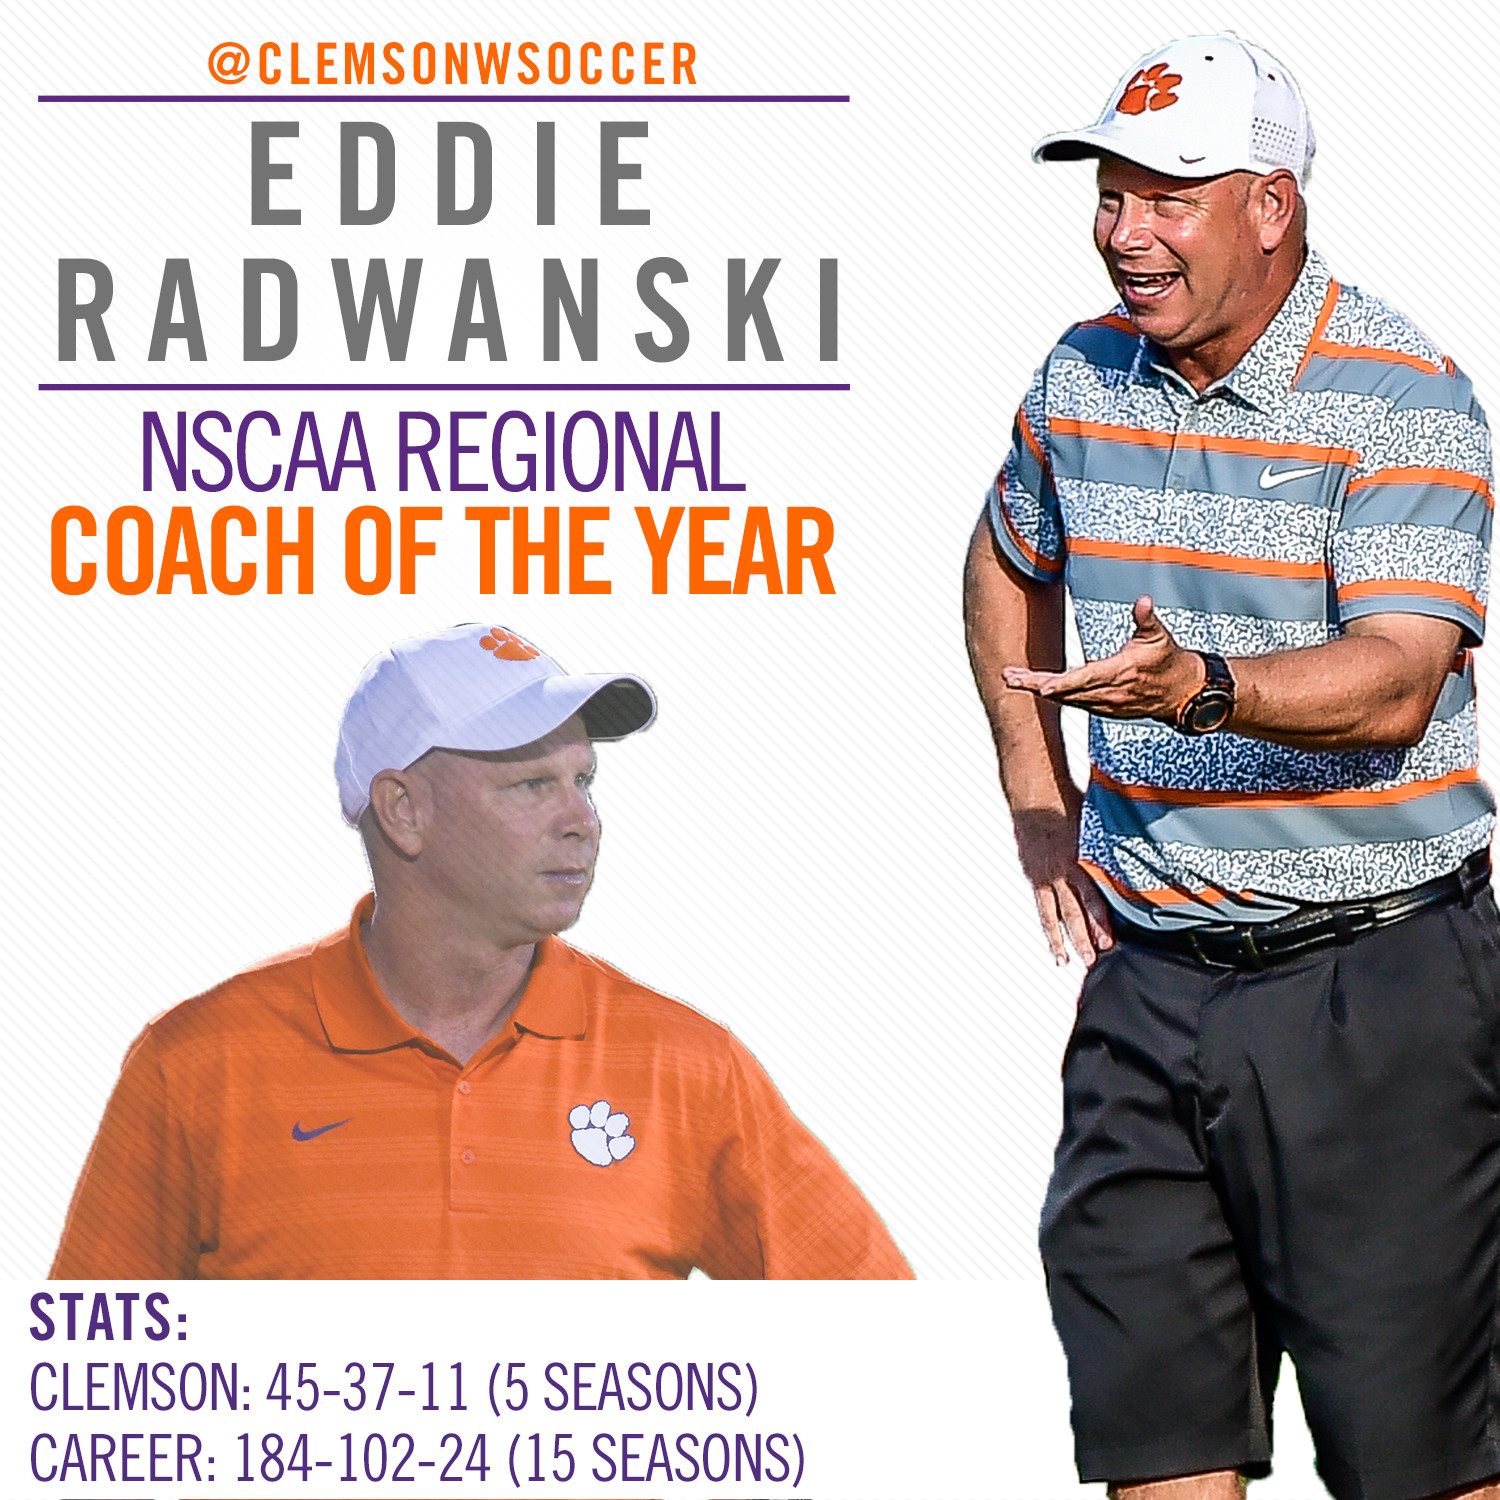 Radwanski Earns Coach of the Year Recognition